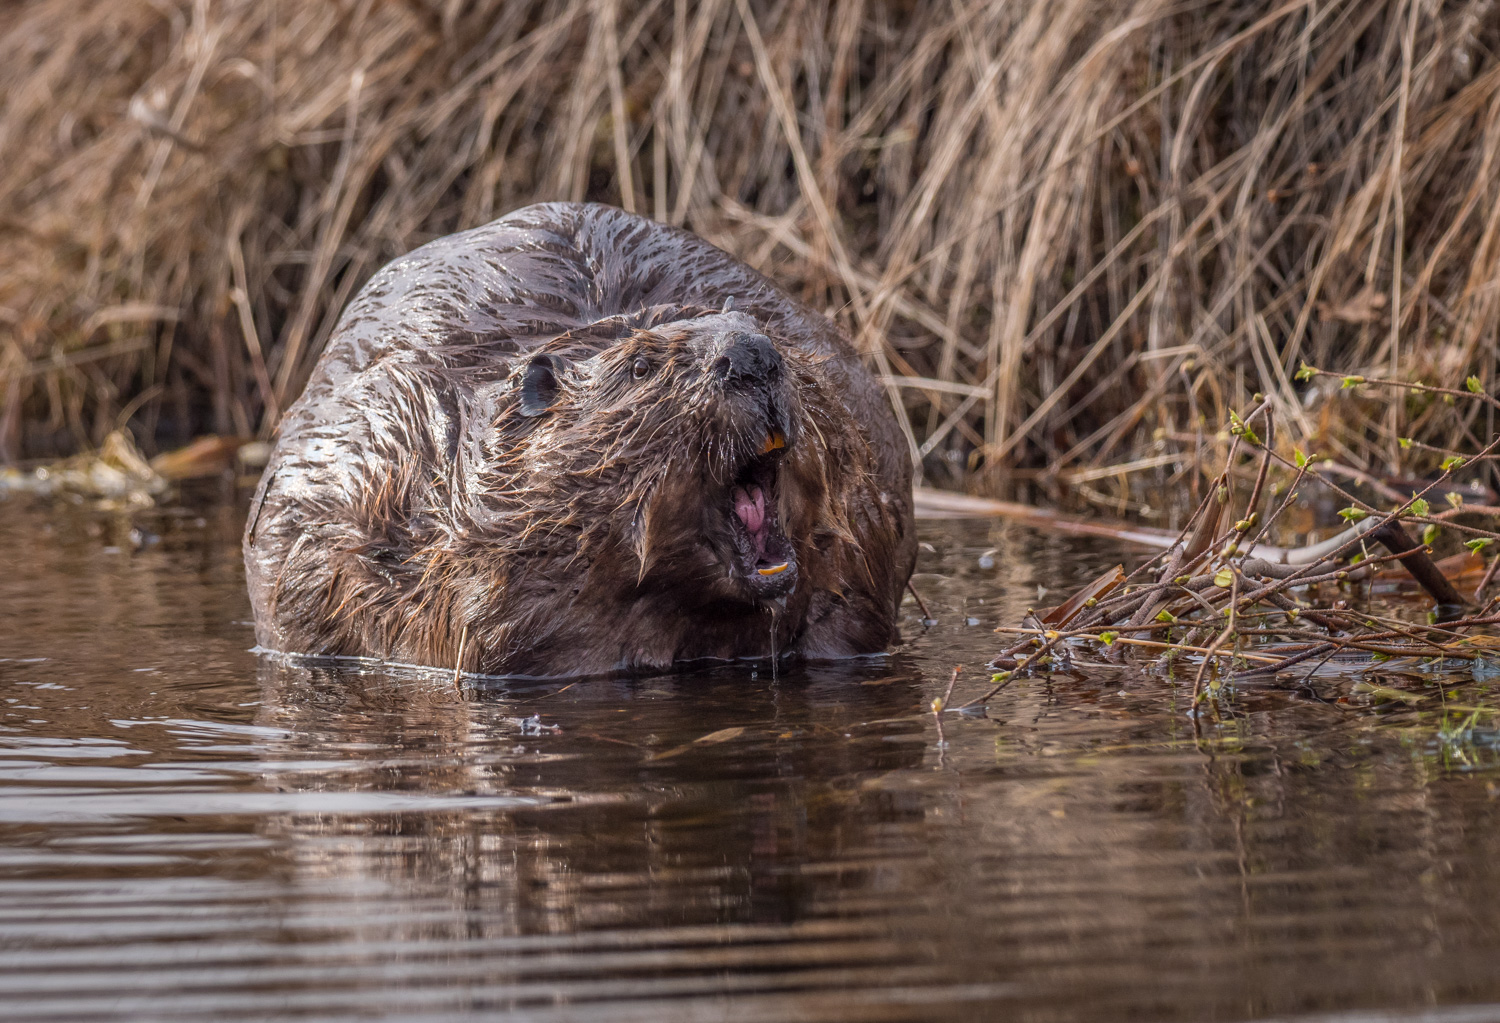 A Guide to Photographing Birds and Wildlife in a Wetland Area - beaver laughing